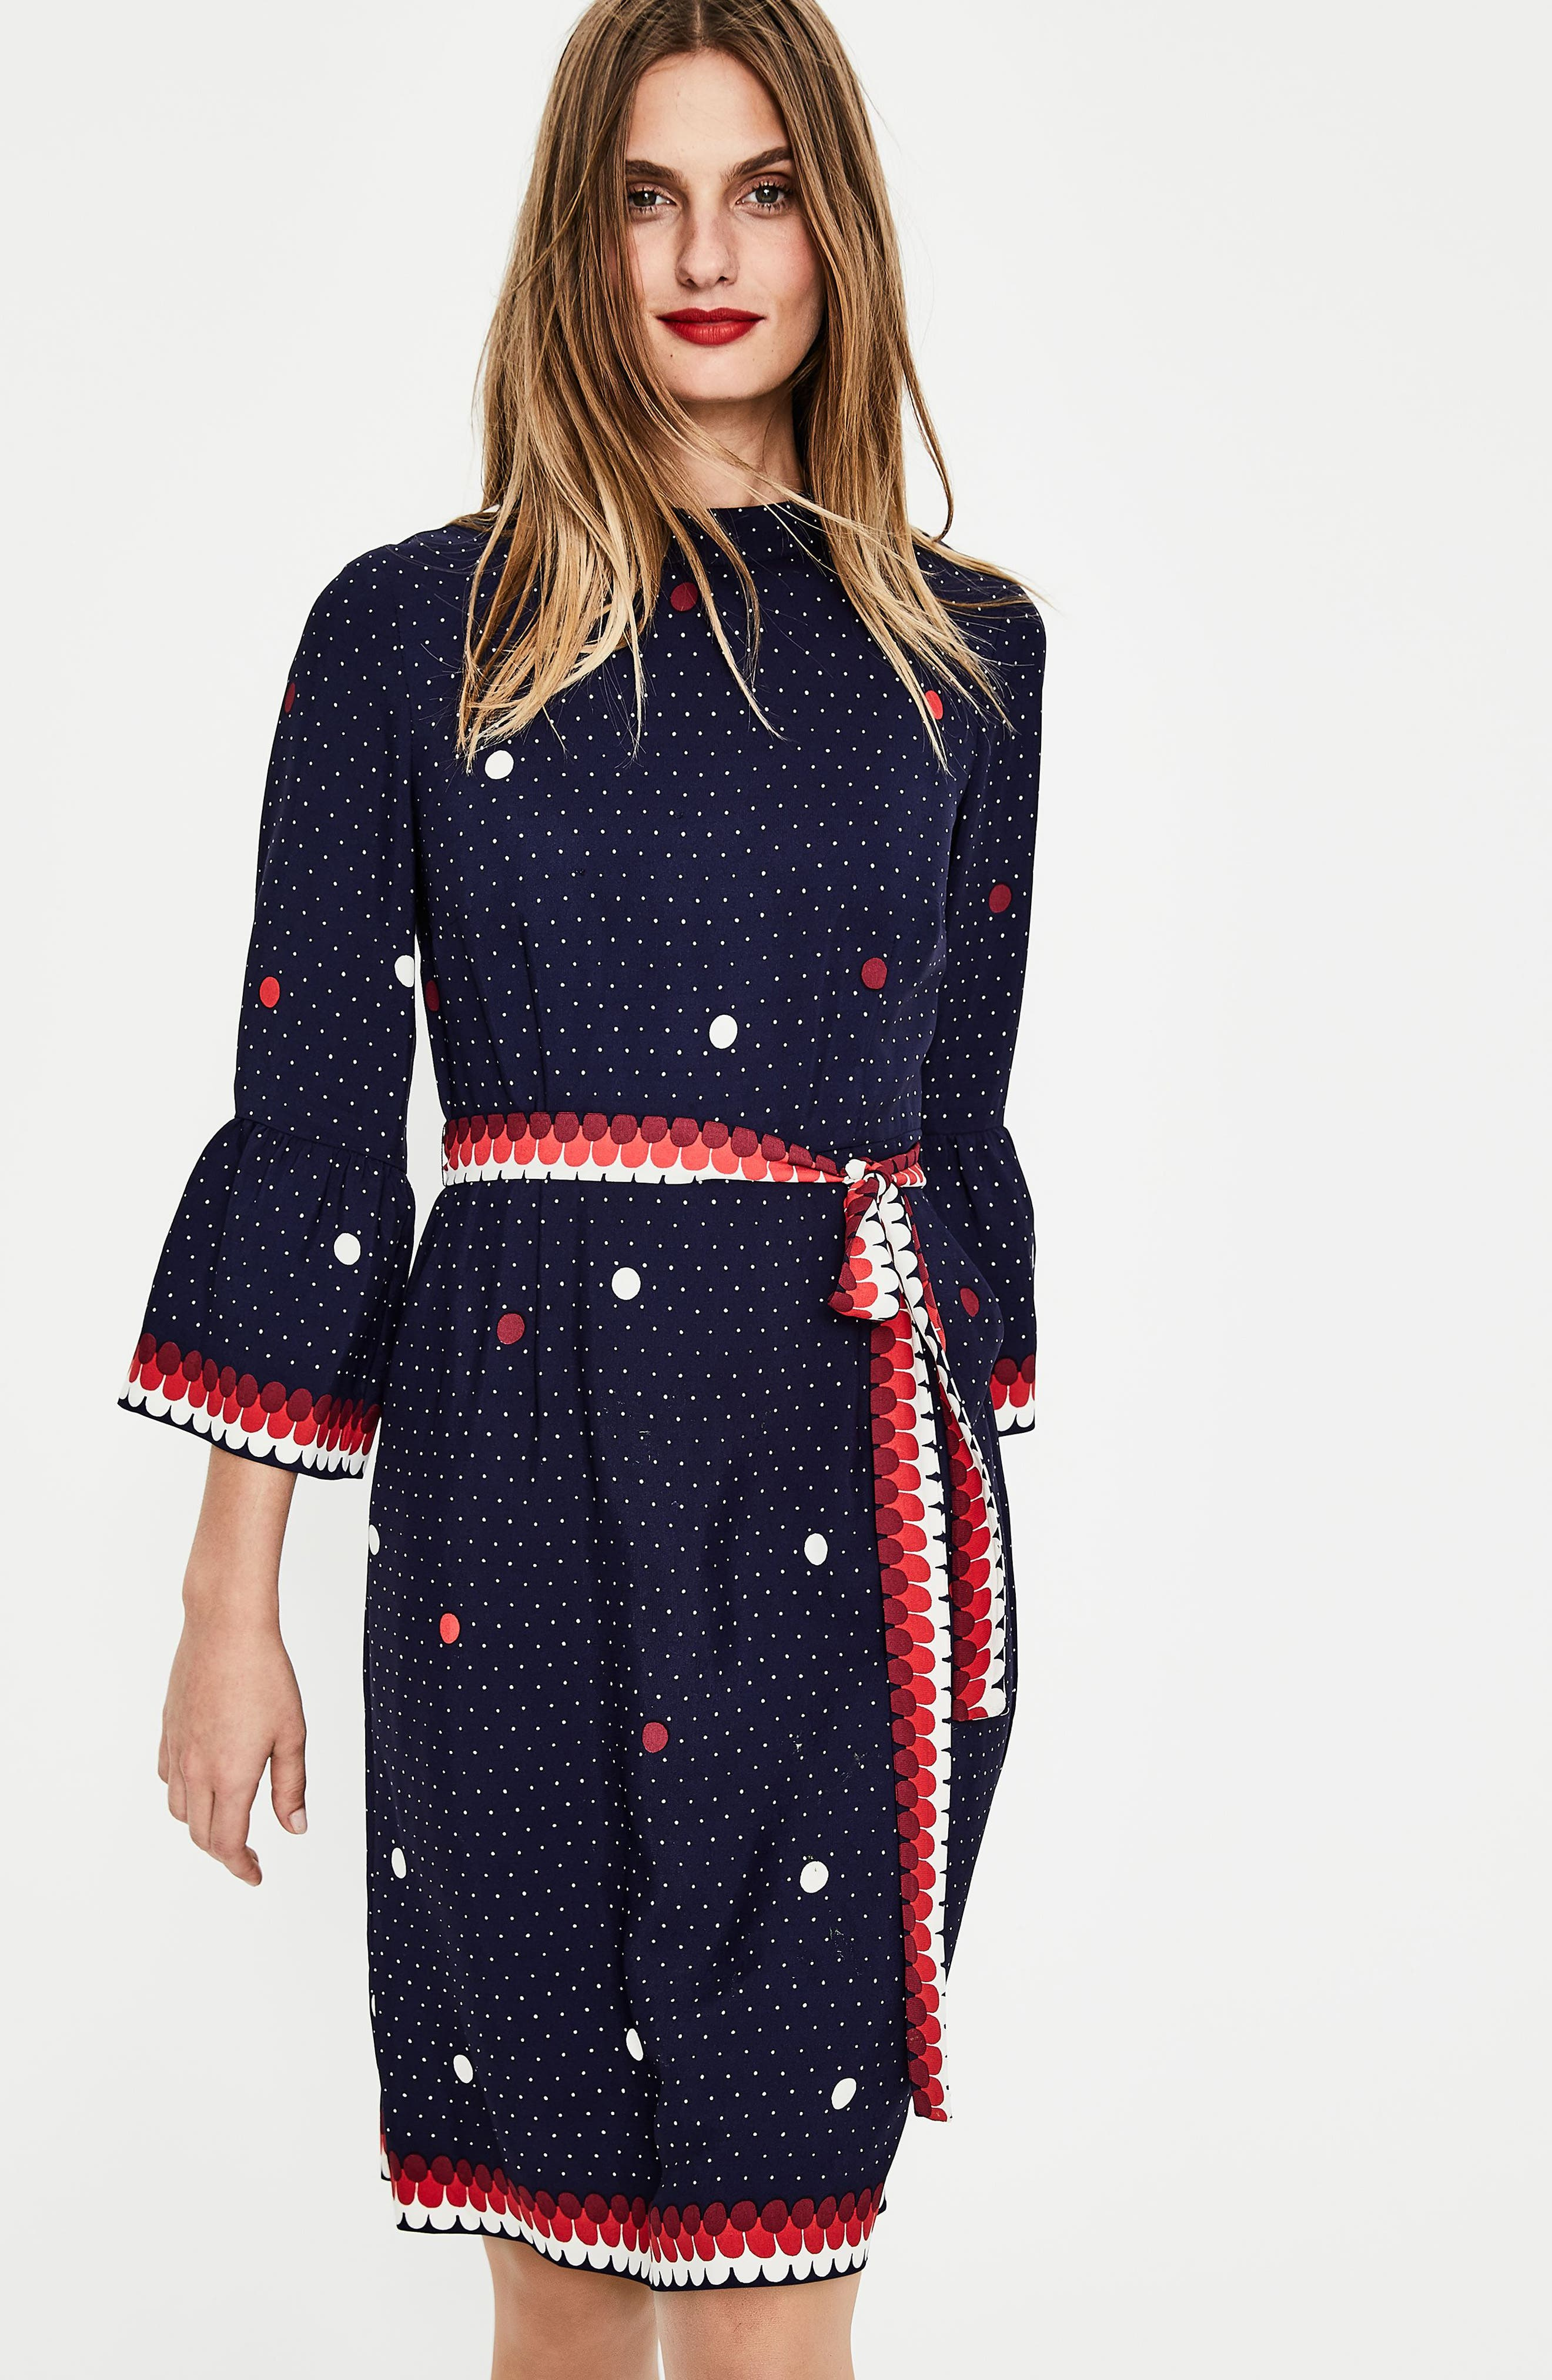 Ruffle Sleeve Polka Dot DRess,                             Alternate thumbnail 2, color,                             Navy/ Spot Border